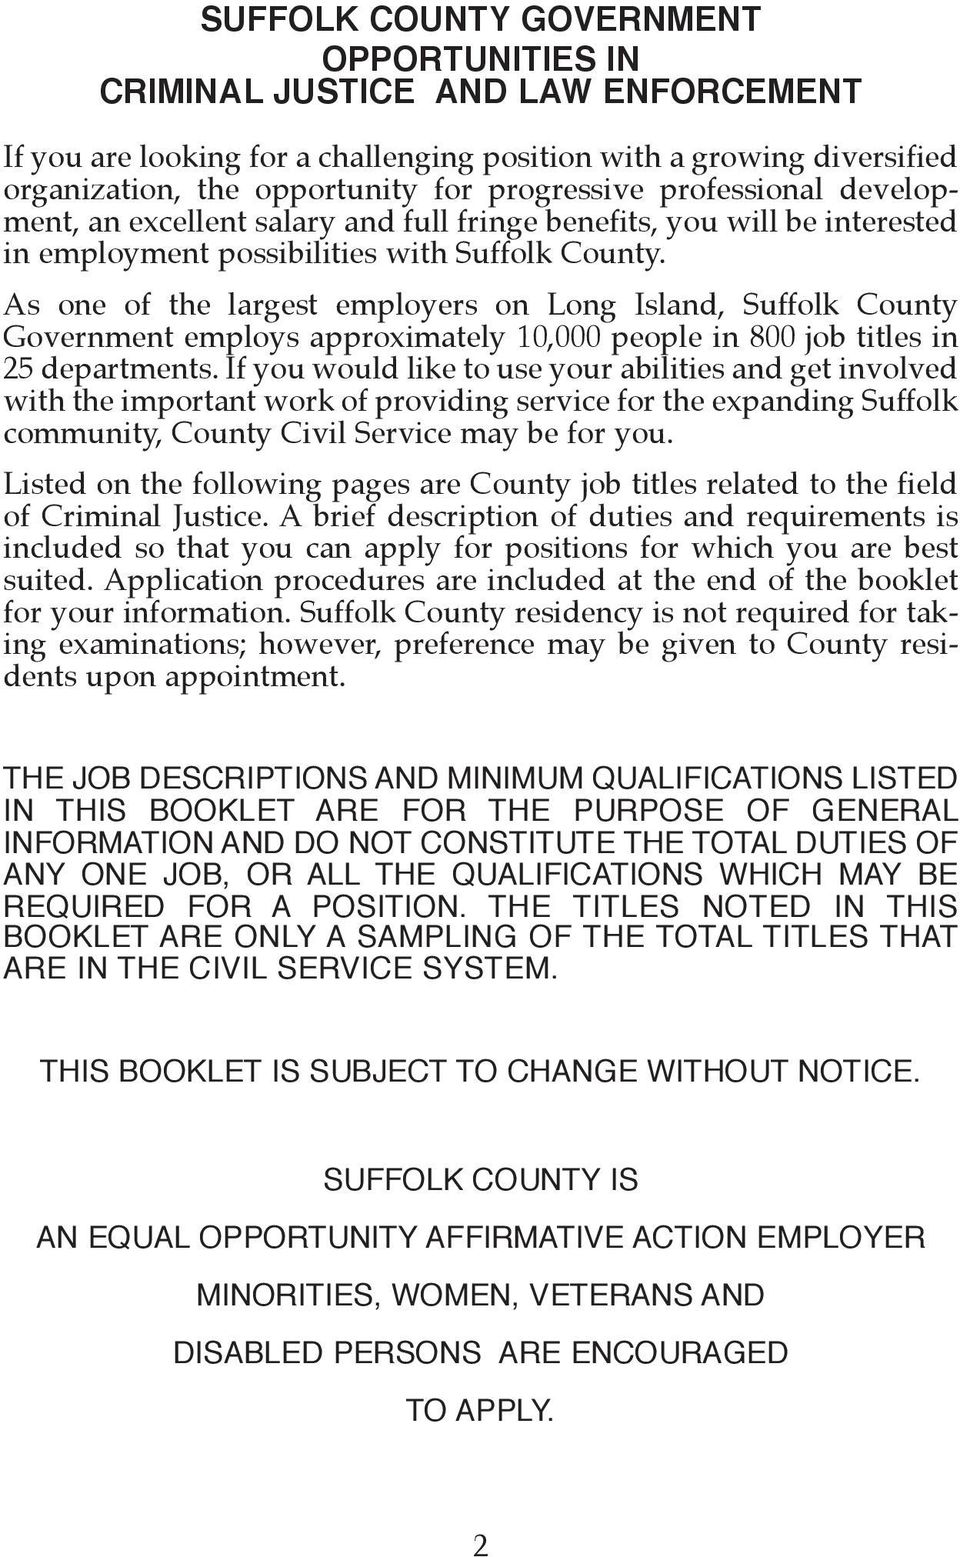 As one of the largest employers on Long Island, Suffolk County Government employs approximately 10,000 people in 800 job titles in 25 departments.